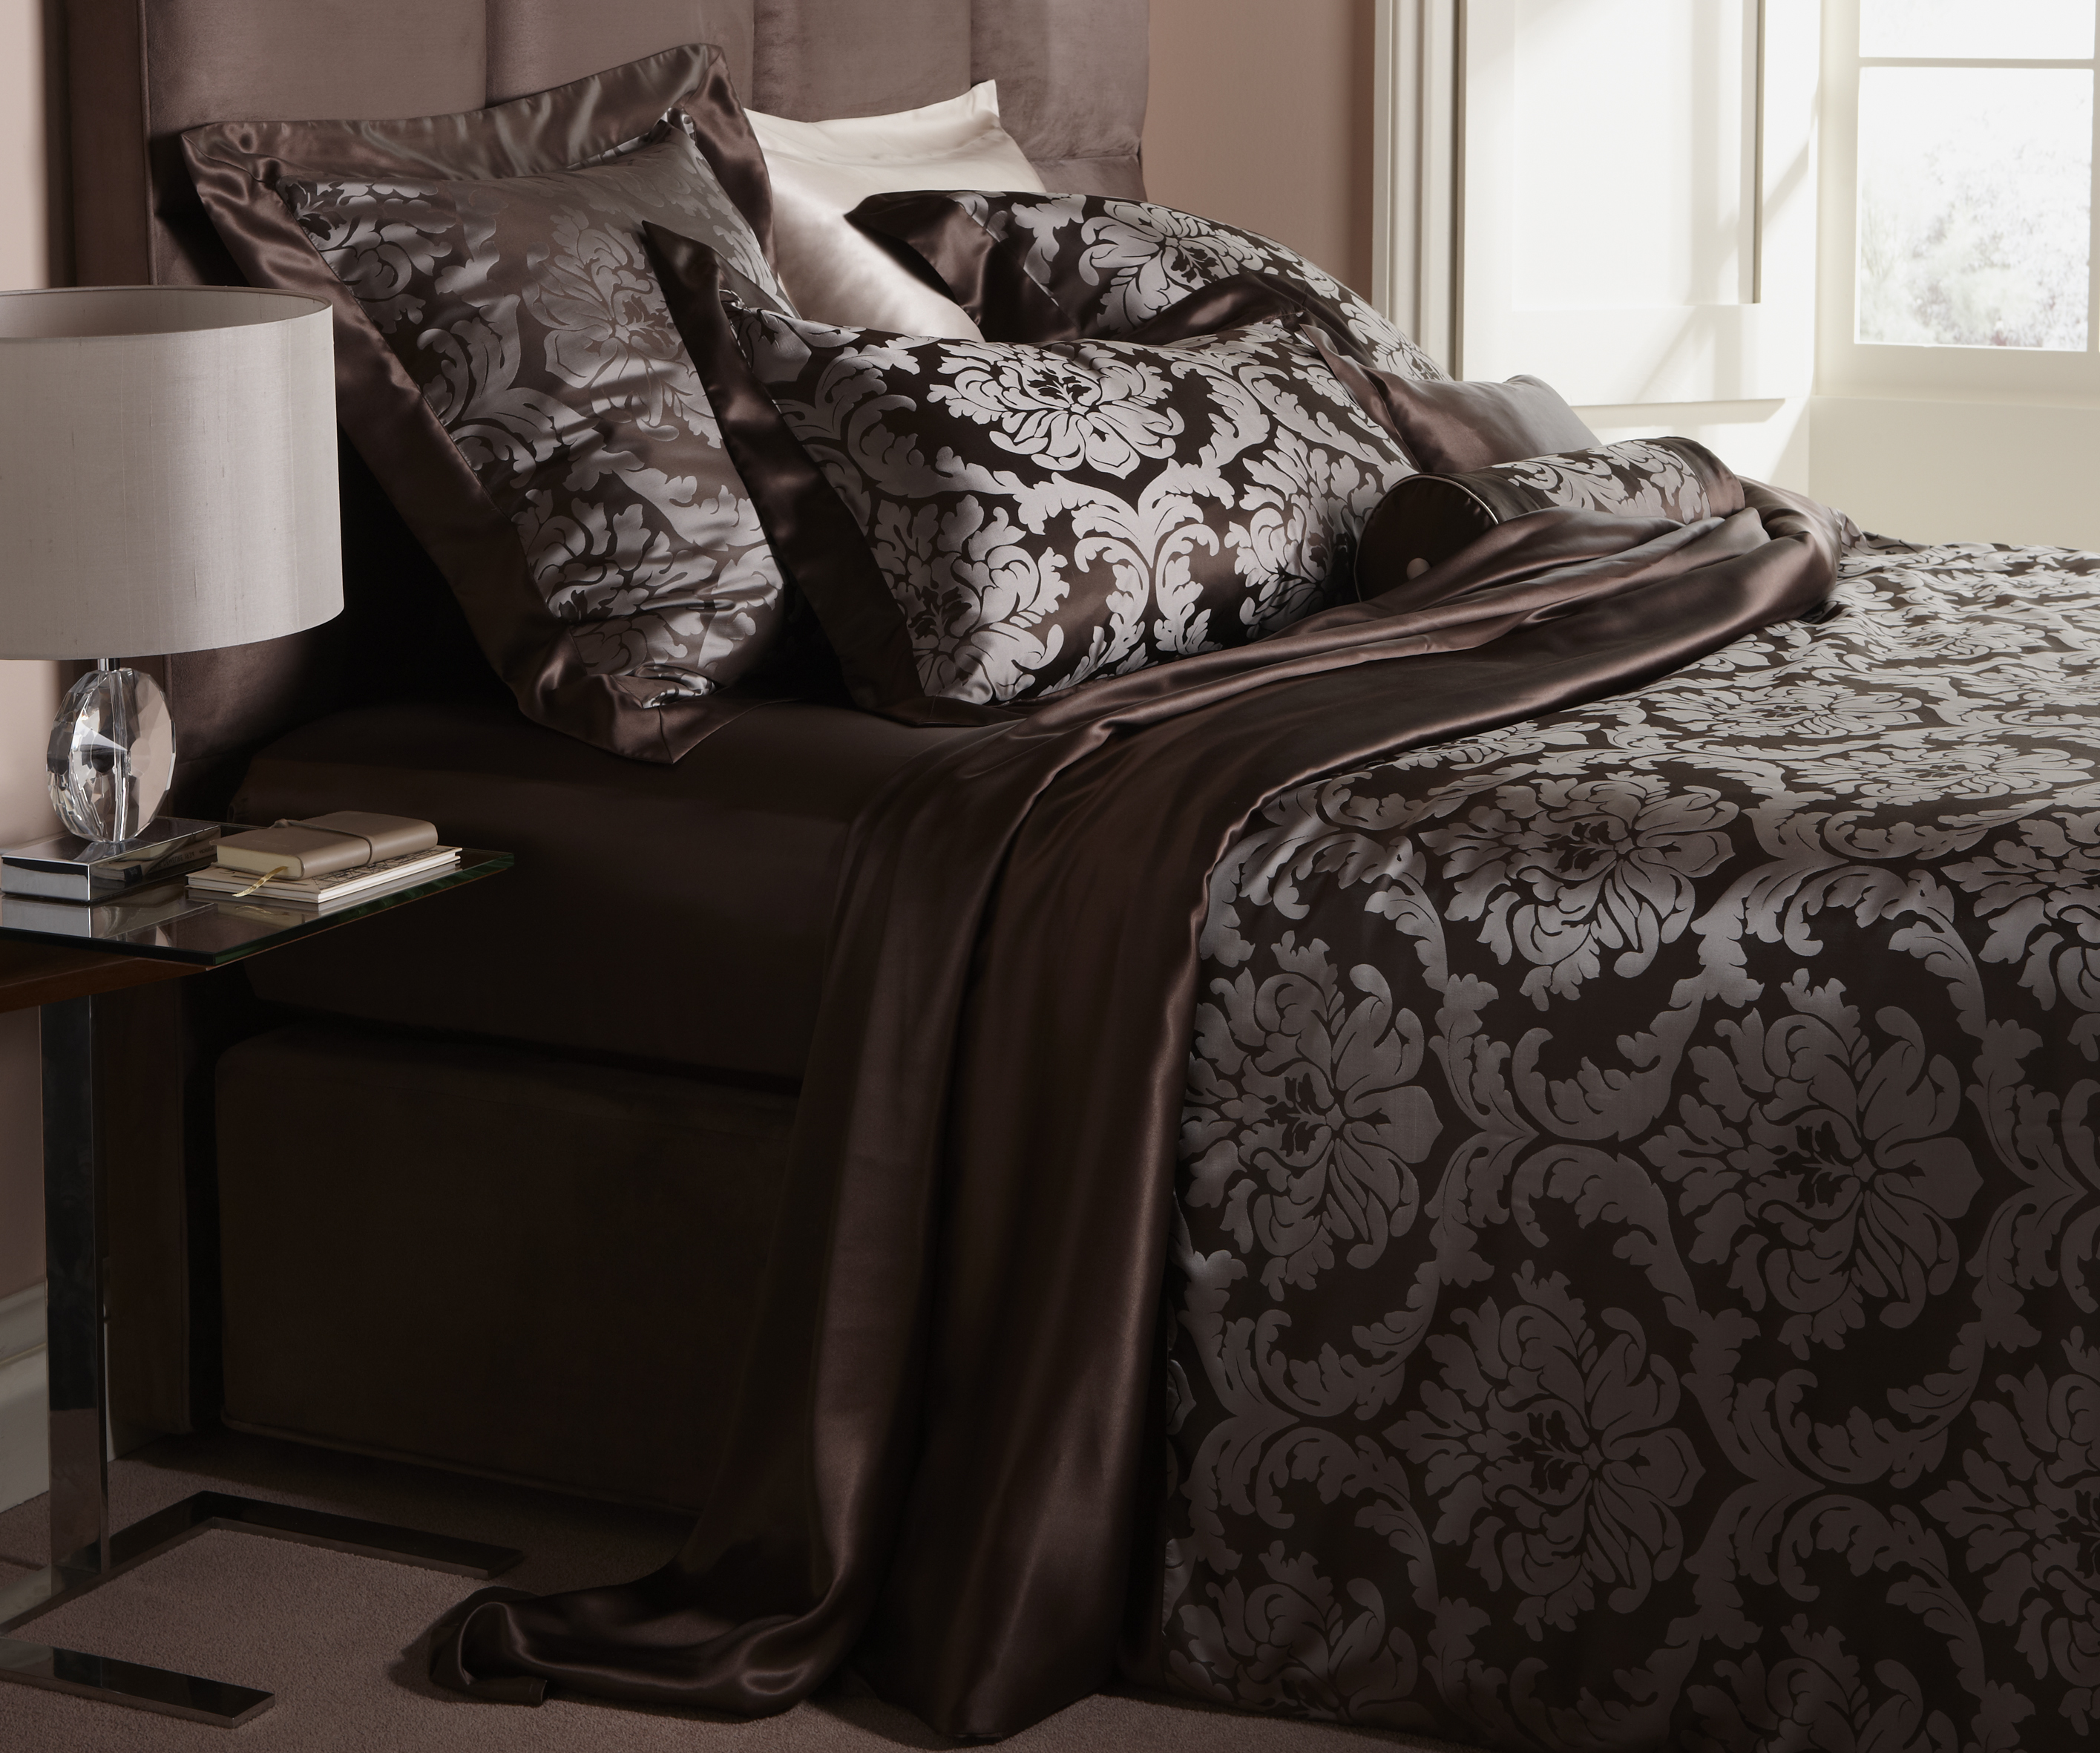 transform your bedroom with luxurious silk